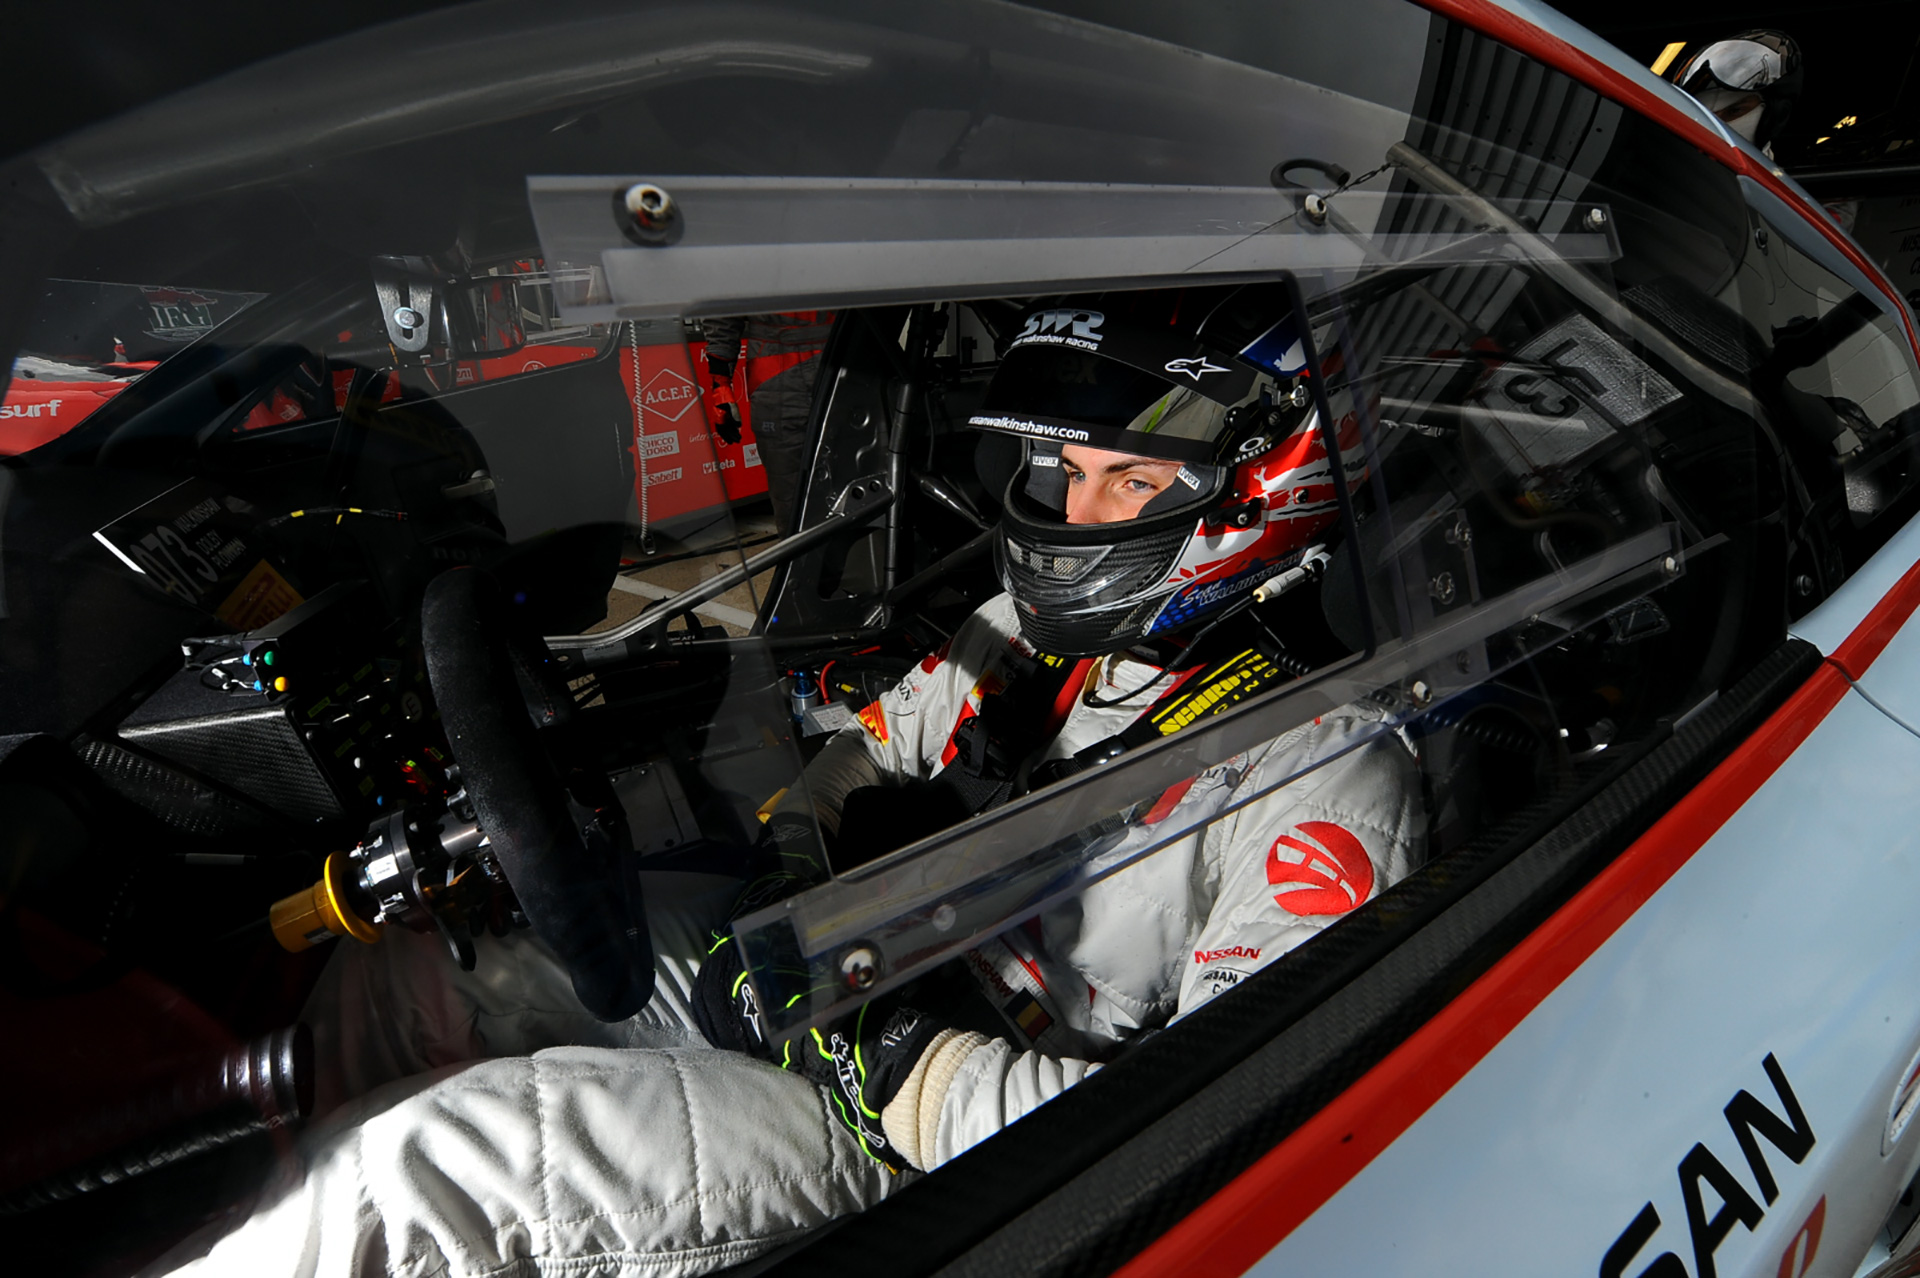 Sean impressed throughout and played a crucial role in the ultimate result with a terrific performance during his stint in the middle of the race.